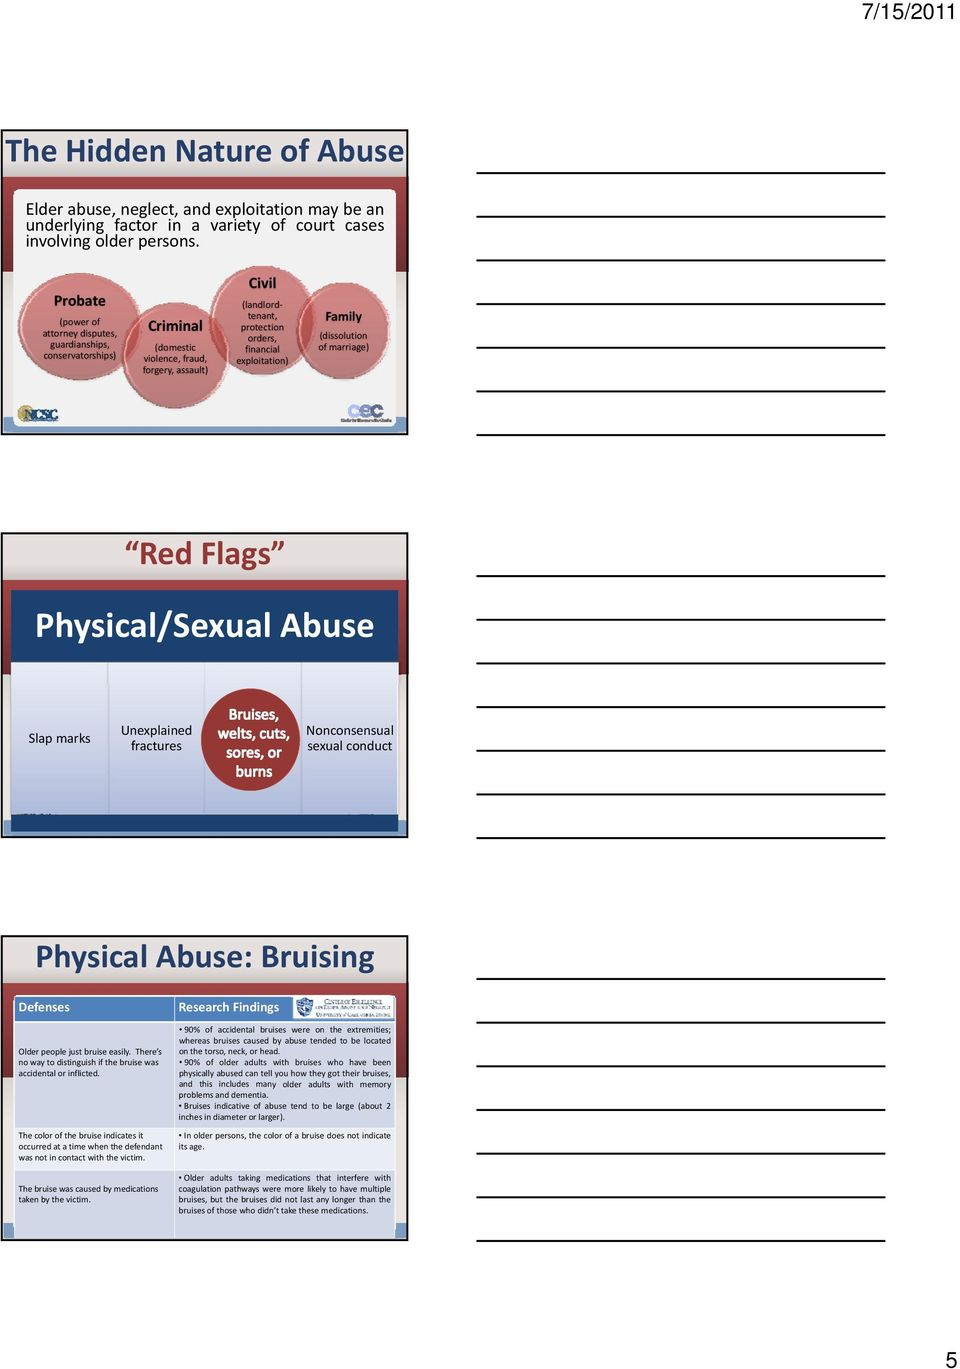 (dissolution of marriage) Red Flags Physical/Sexual Abuse Slap marks Unexplained fractures Bruises, welts, cuts, sores, or burns Nonconsensual sexual conduct Physical Abuse: Bruising Defenses Older